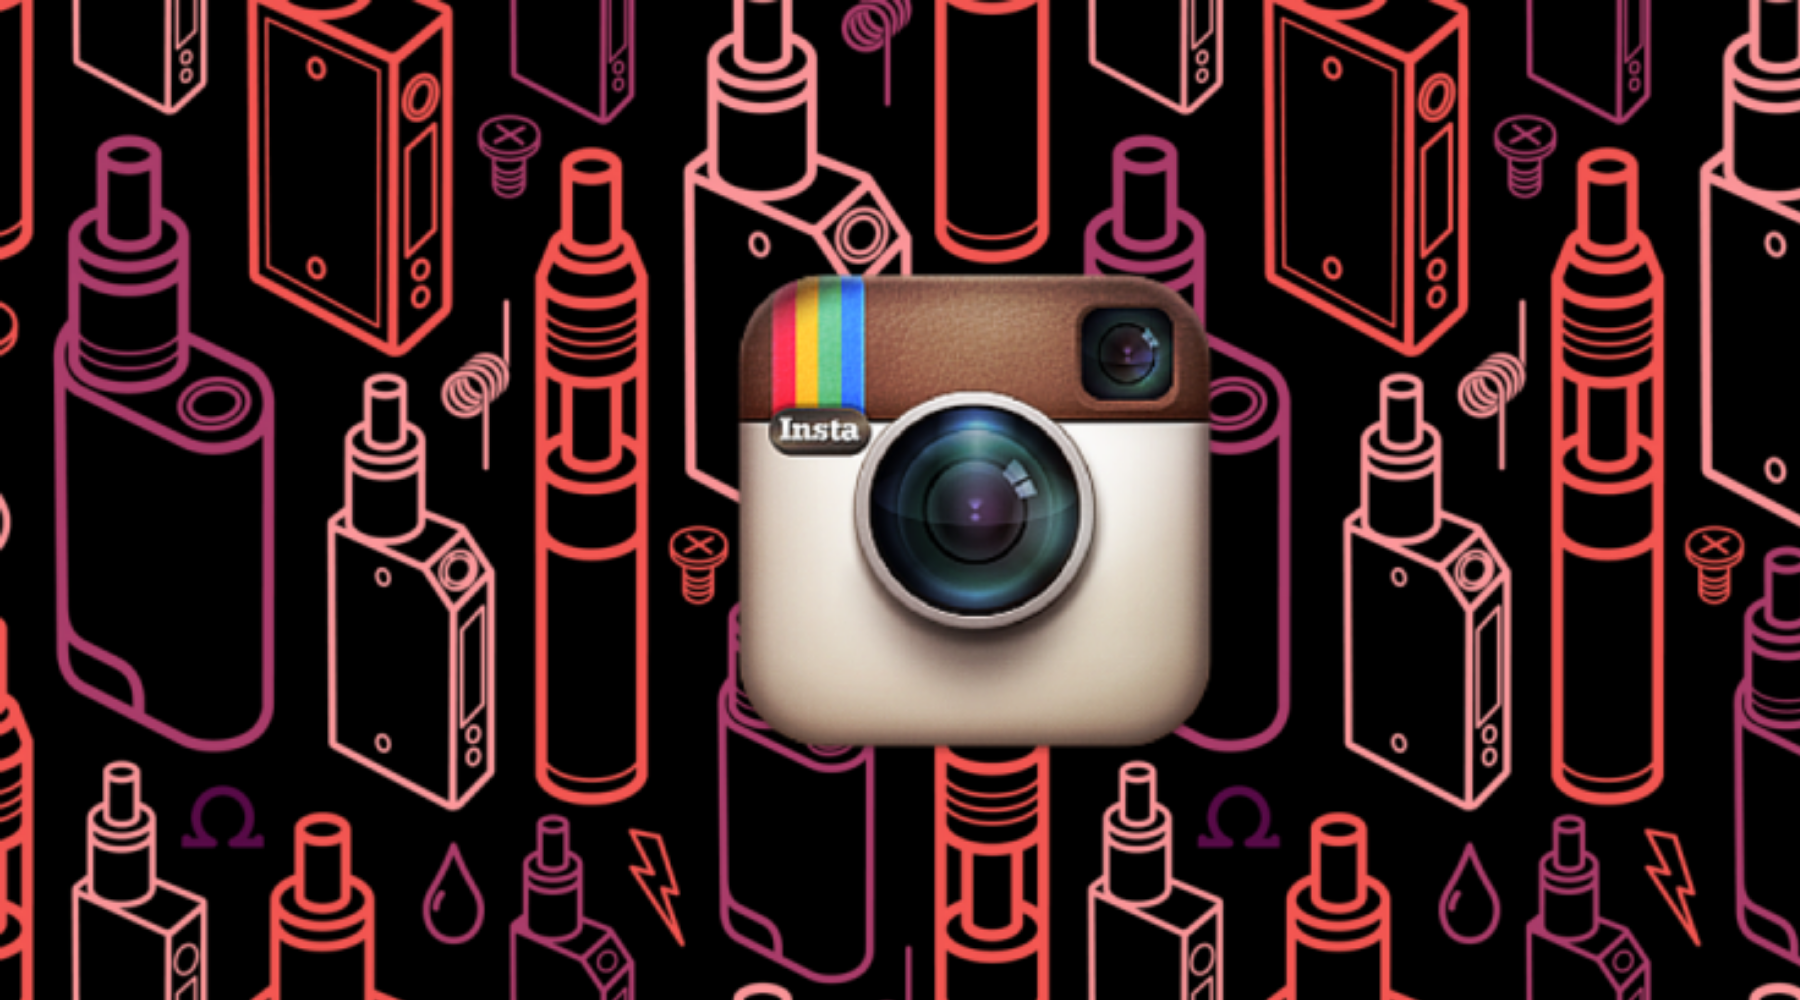 Instagram Management Software for Growing Your Instagram Vape Account